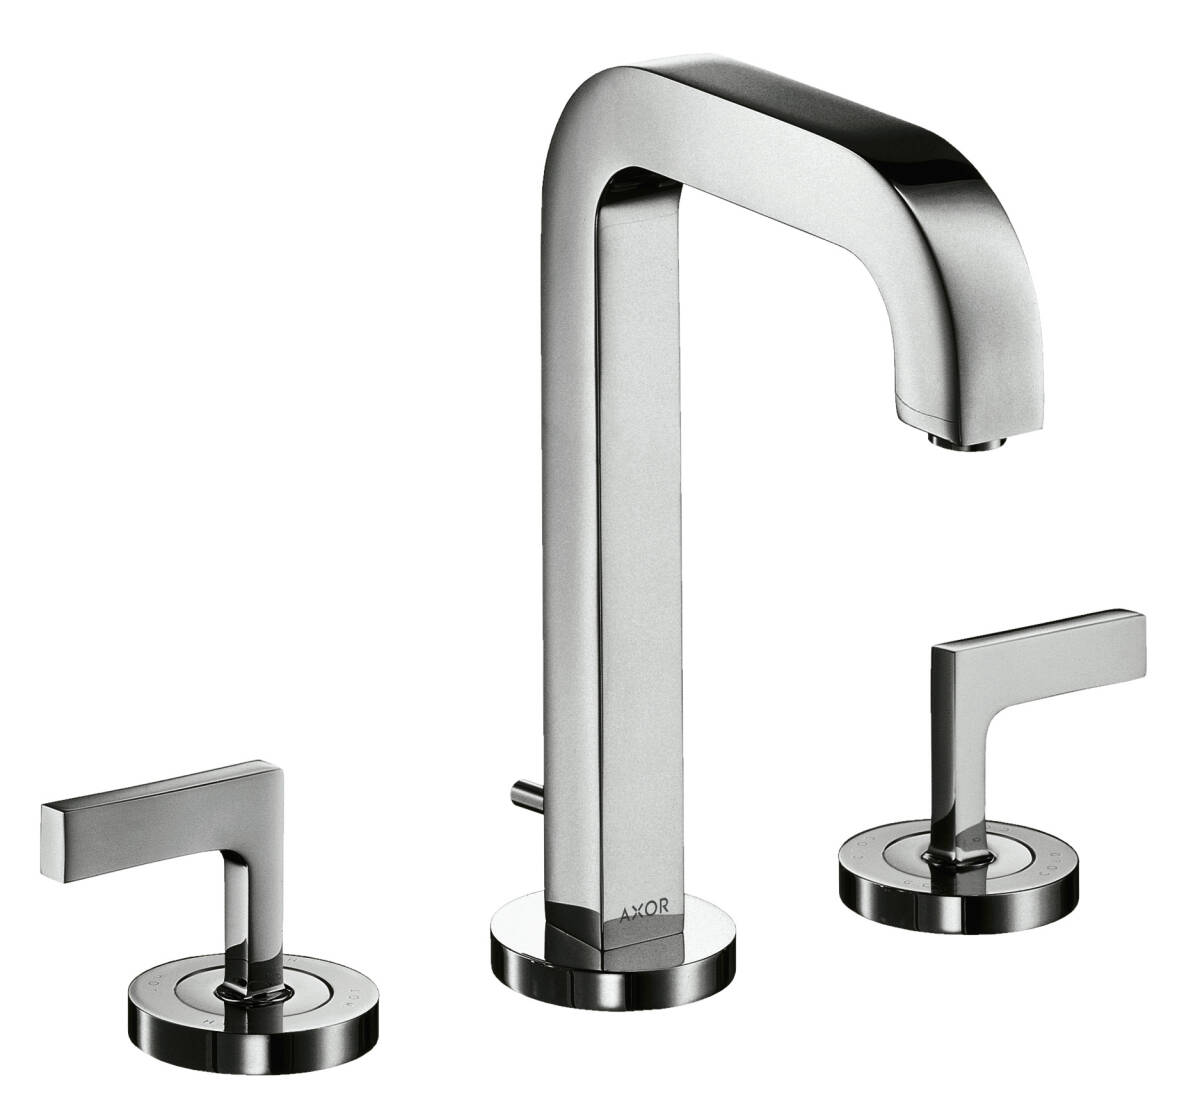 3-hole basin mixer 170 with spout 140 mm, lever handles, escutcheons and pop-up waste set, Chrome, 39135000